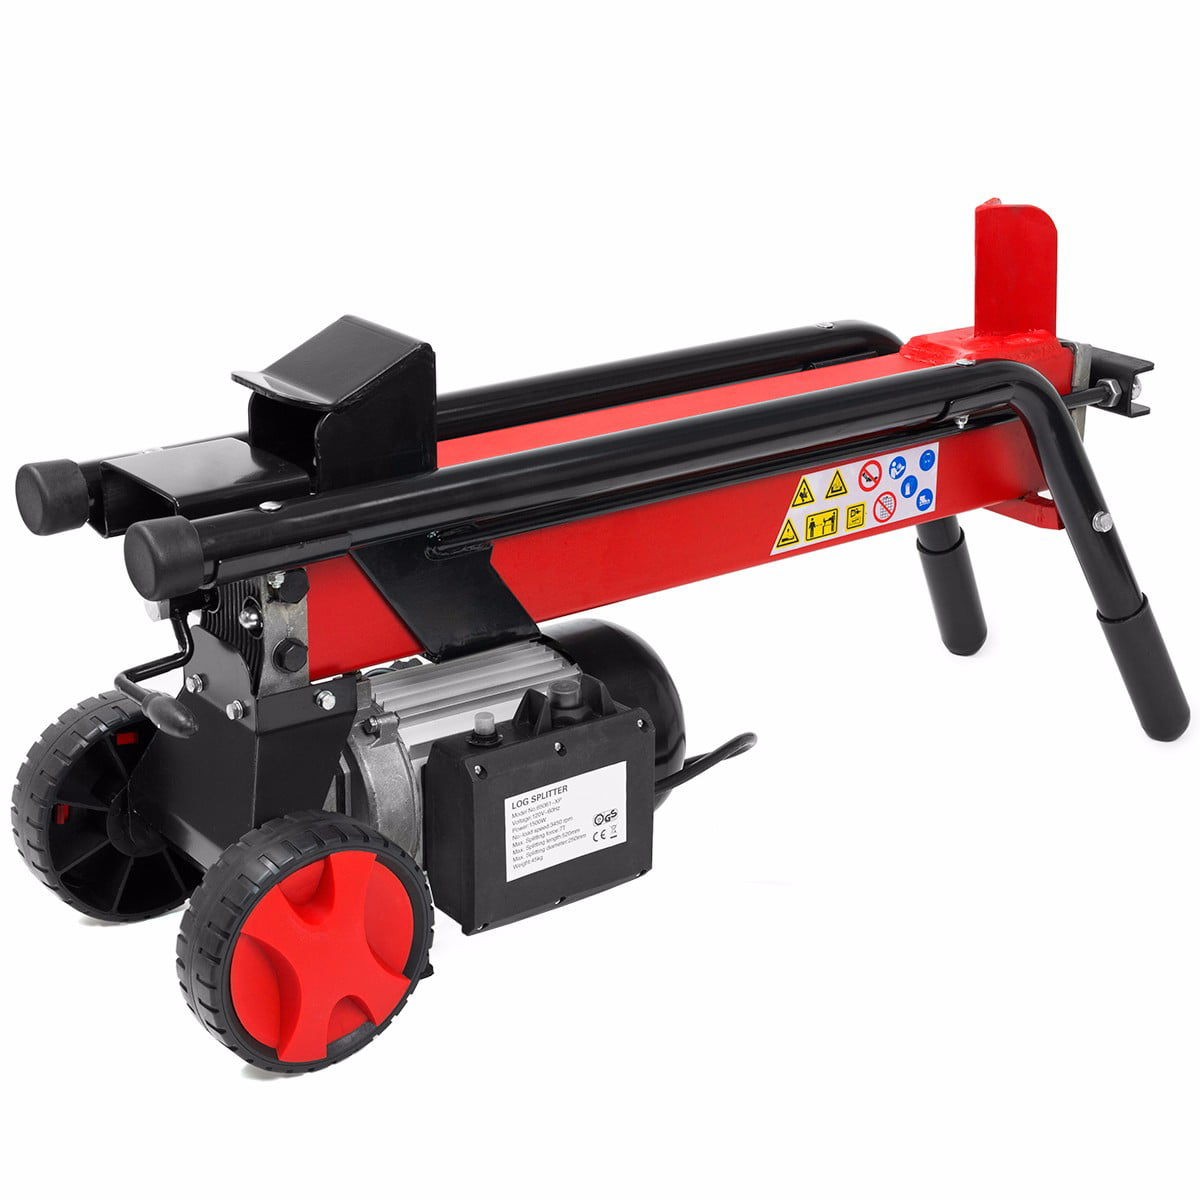 "7 Ton Electrical Hydraulic Log Splitter Cutter 7"" Mobile Wheels Red by XtremepowerUS"